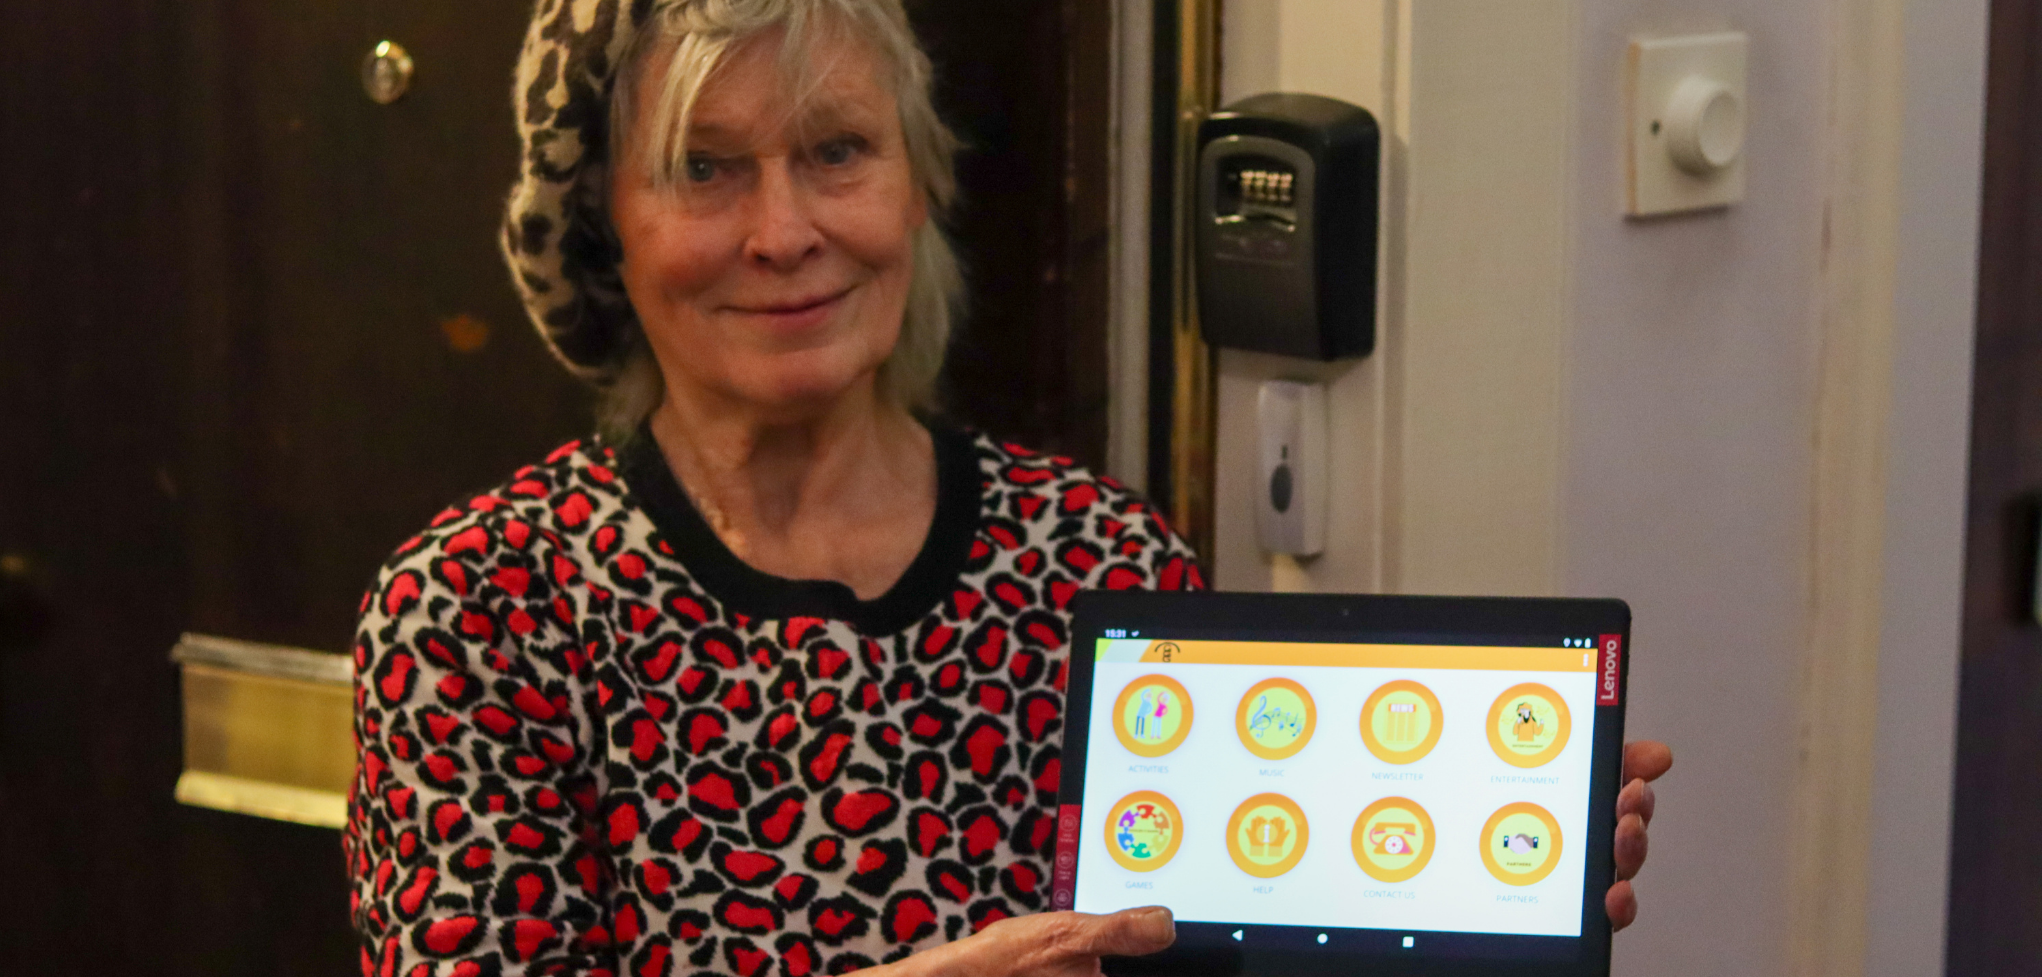 Picture of older adult in front of her door, holding a tablet with icons displayed